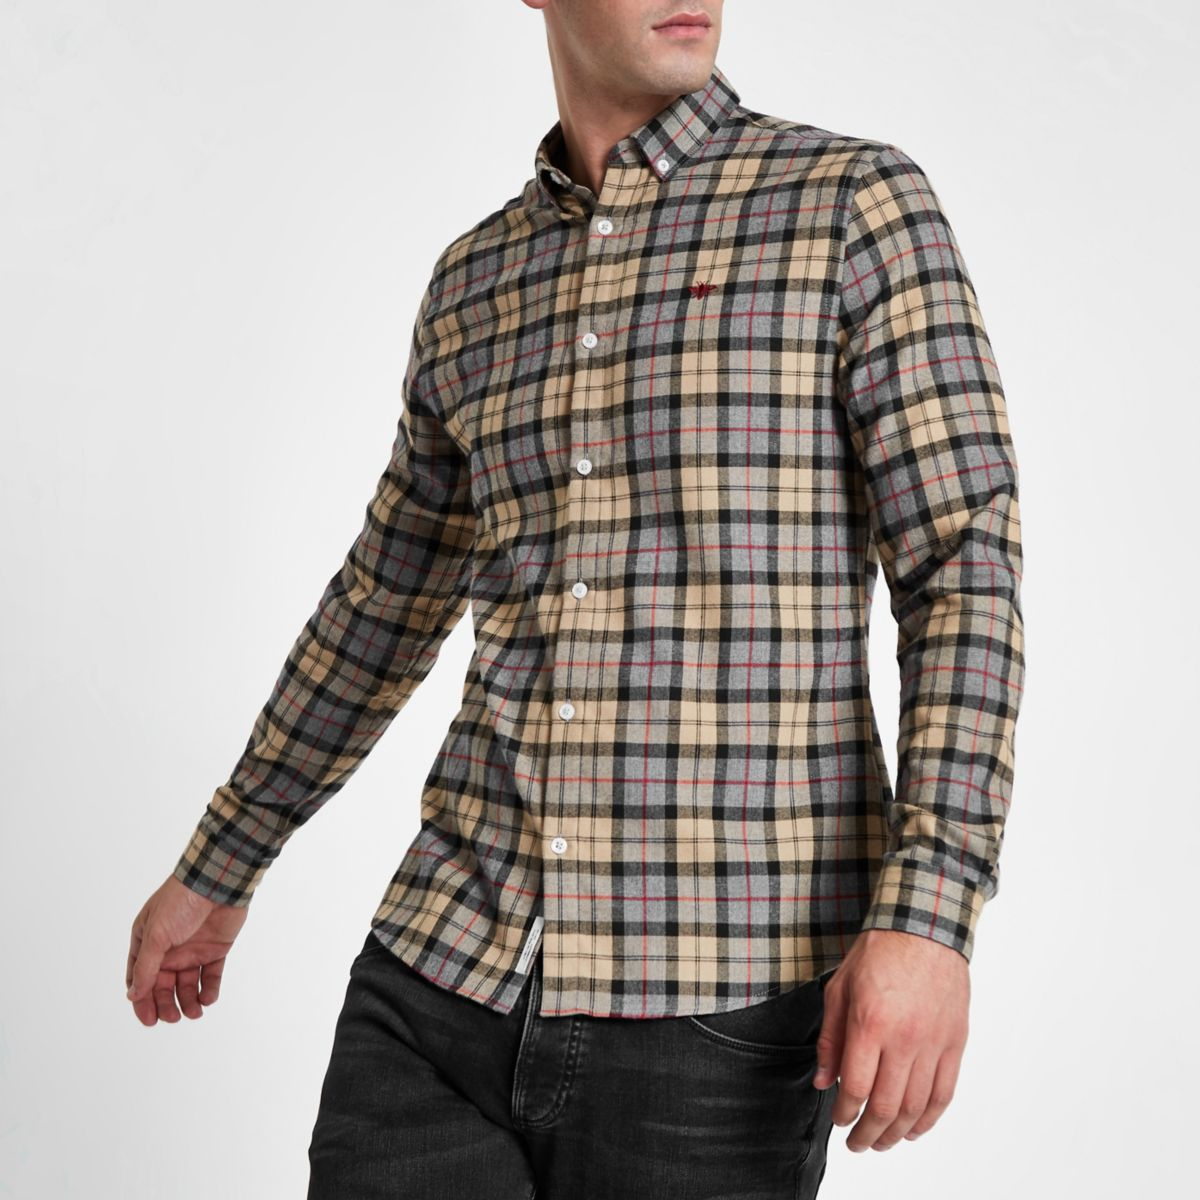 Stone check wasp embroidered button up shirt